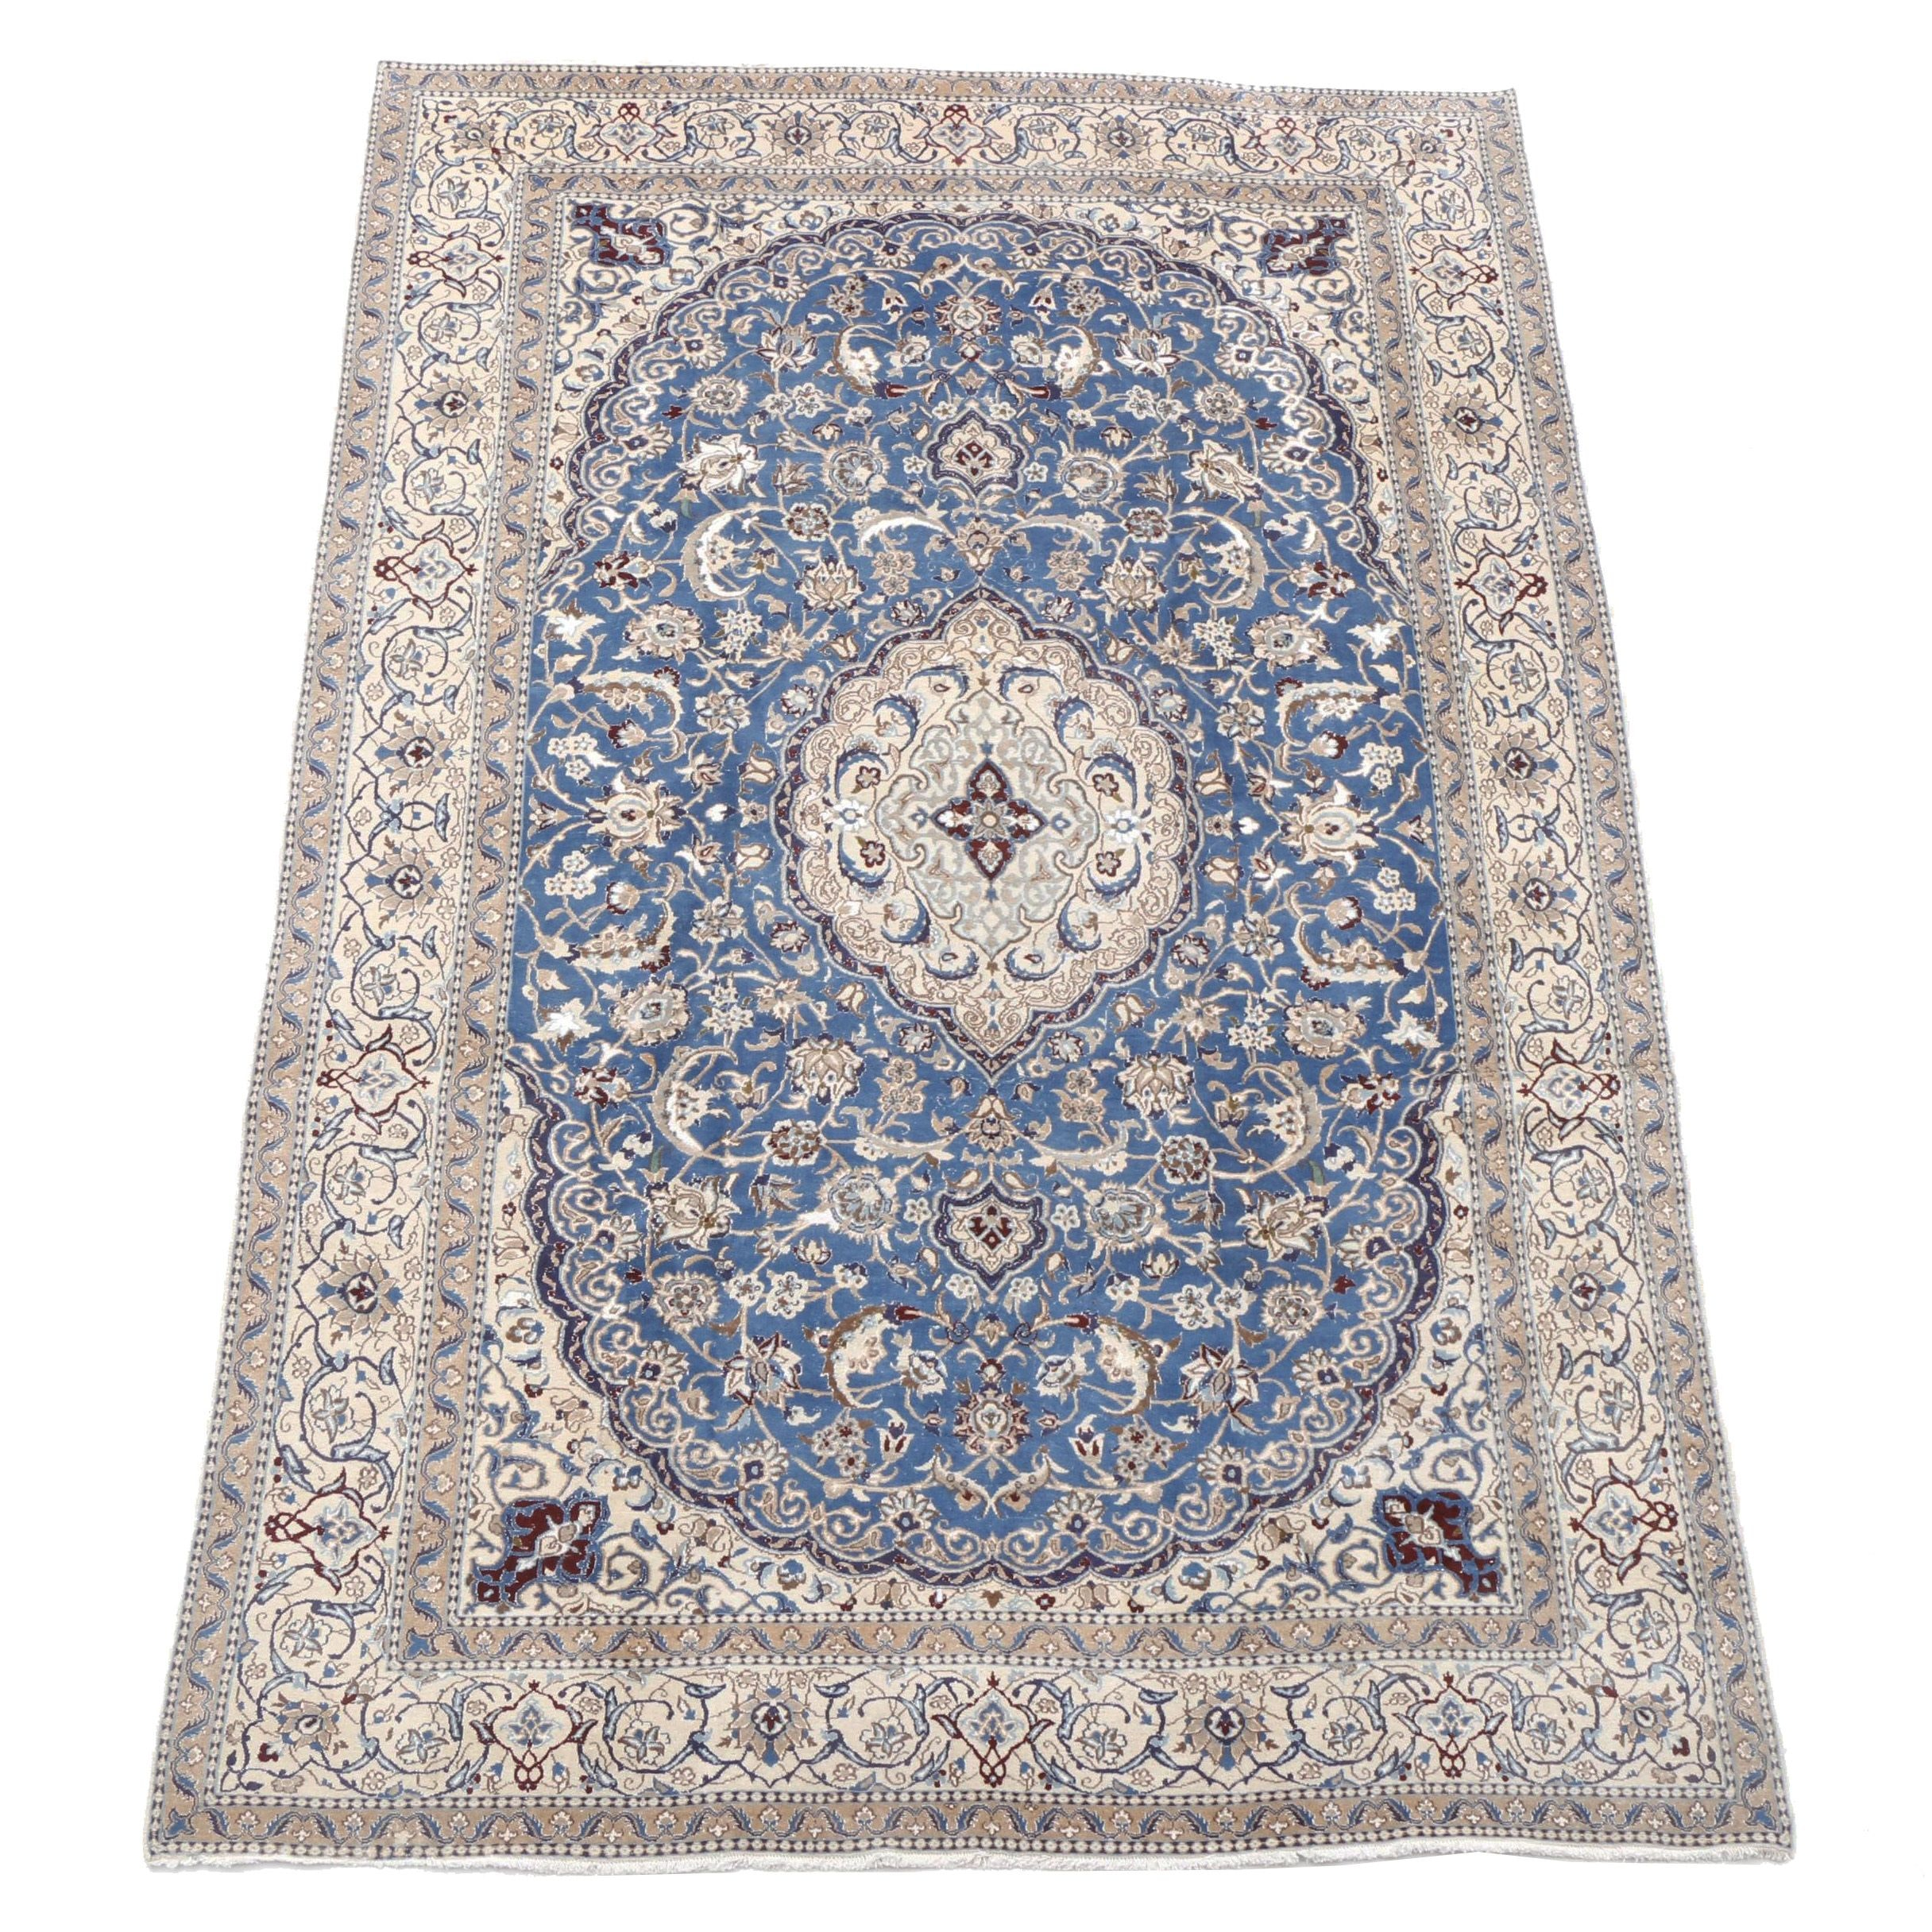 Hand-Knotted Persian Nain Silk and Wool Room-Sized Rug